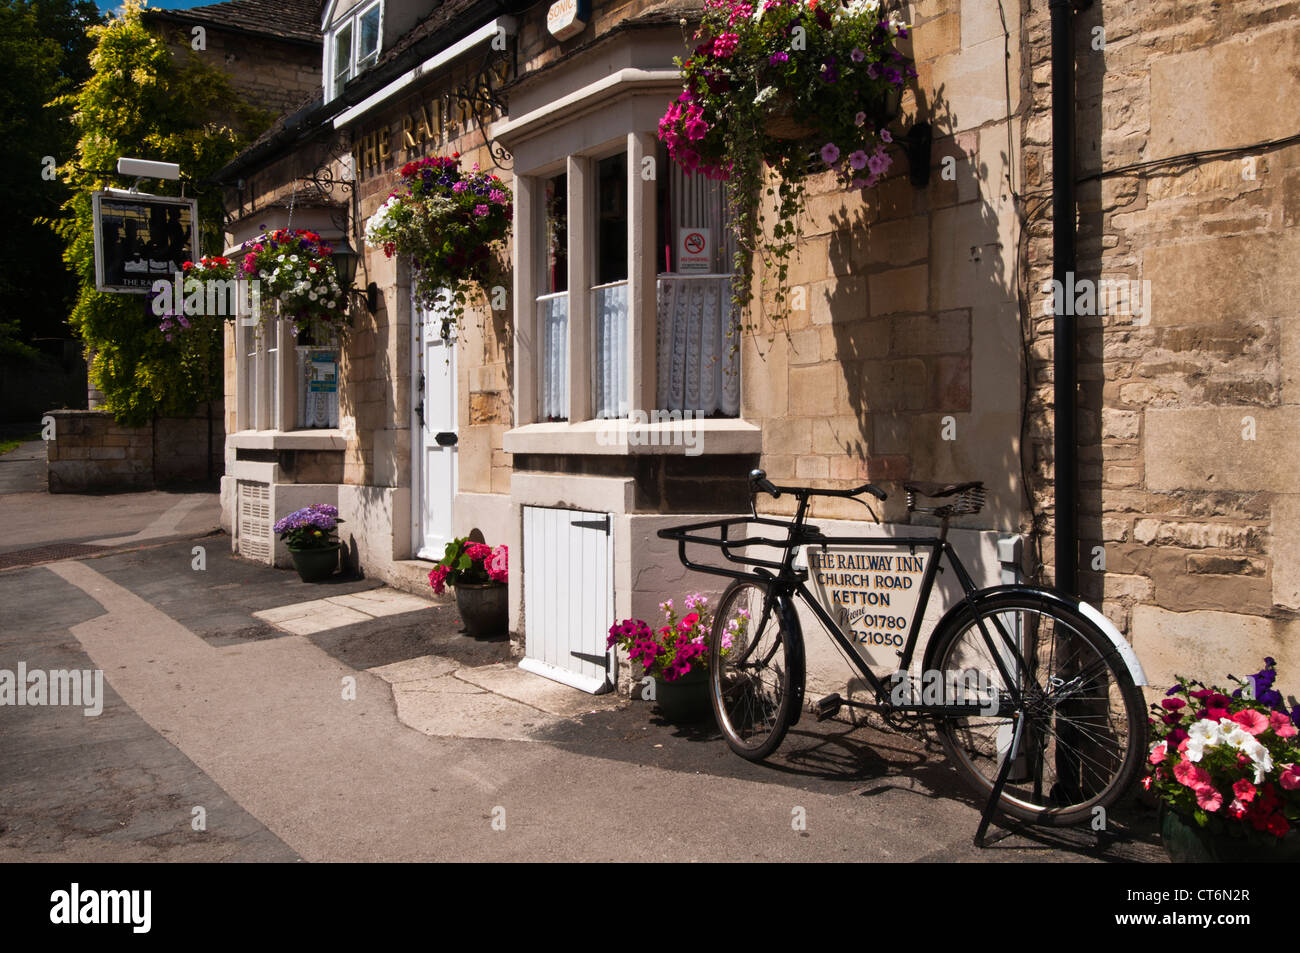 The Railway Inn with colourful hanging baskets and pots in Church Road, Ketton, Rutland, England - Stock Image